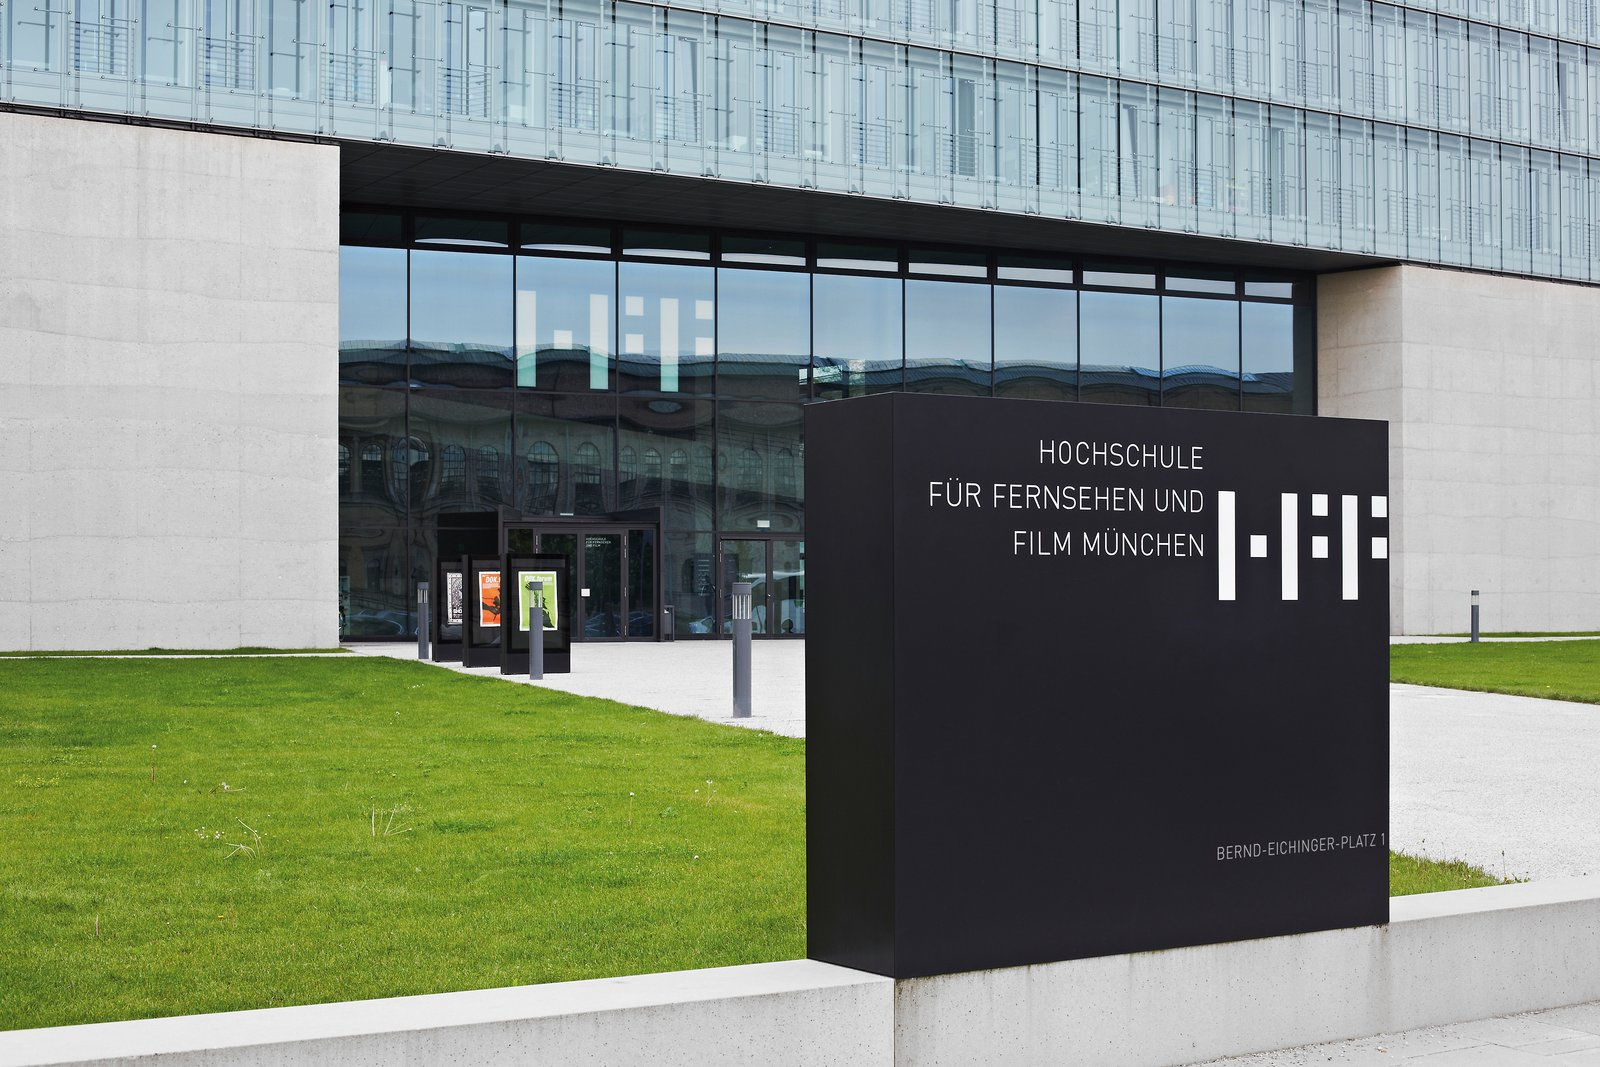 University of Television and Film Munich: To ensure easy orientation, the university's logo and important information were applied, almost like projections, directly onto the concrete and glass facades for high visibility.  Way-Finding Systems by Rob Hewitt